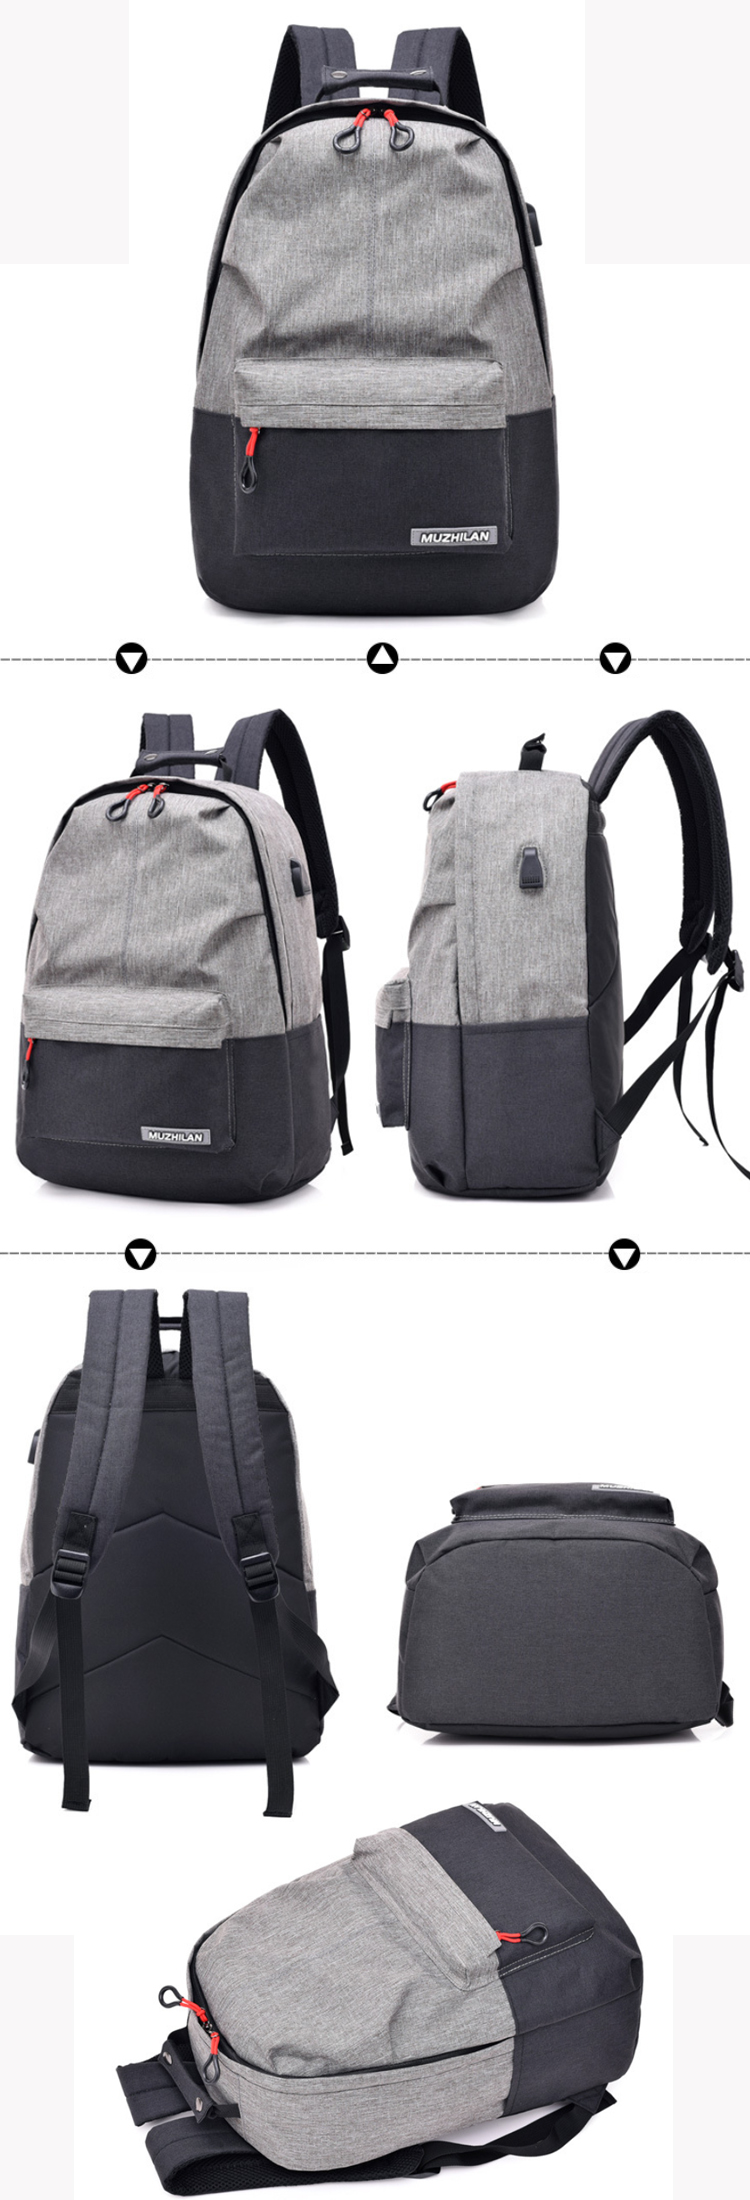 Osgoodway2 Wholesale Wear Resistant Fabric Business Travel Backpack Fashion School Backpack